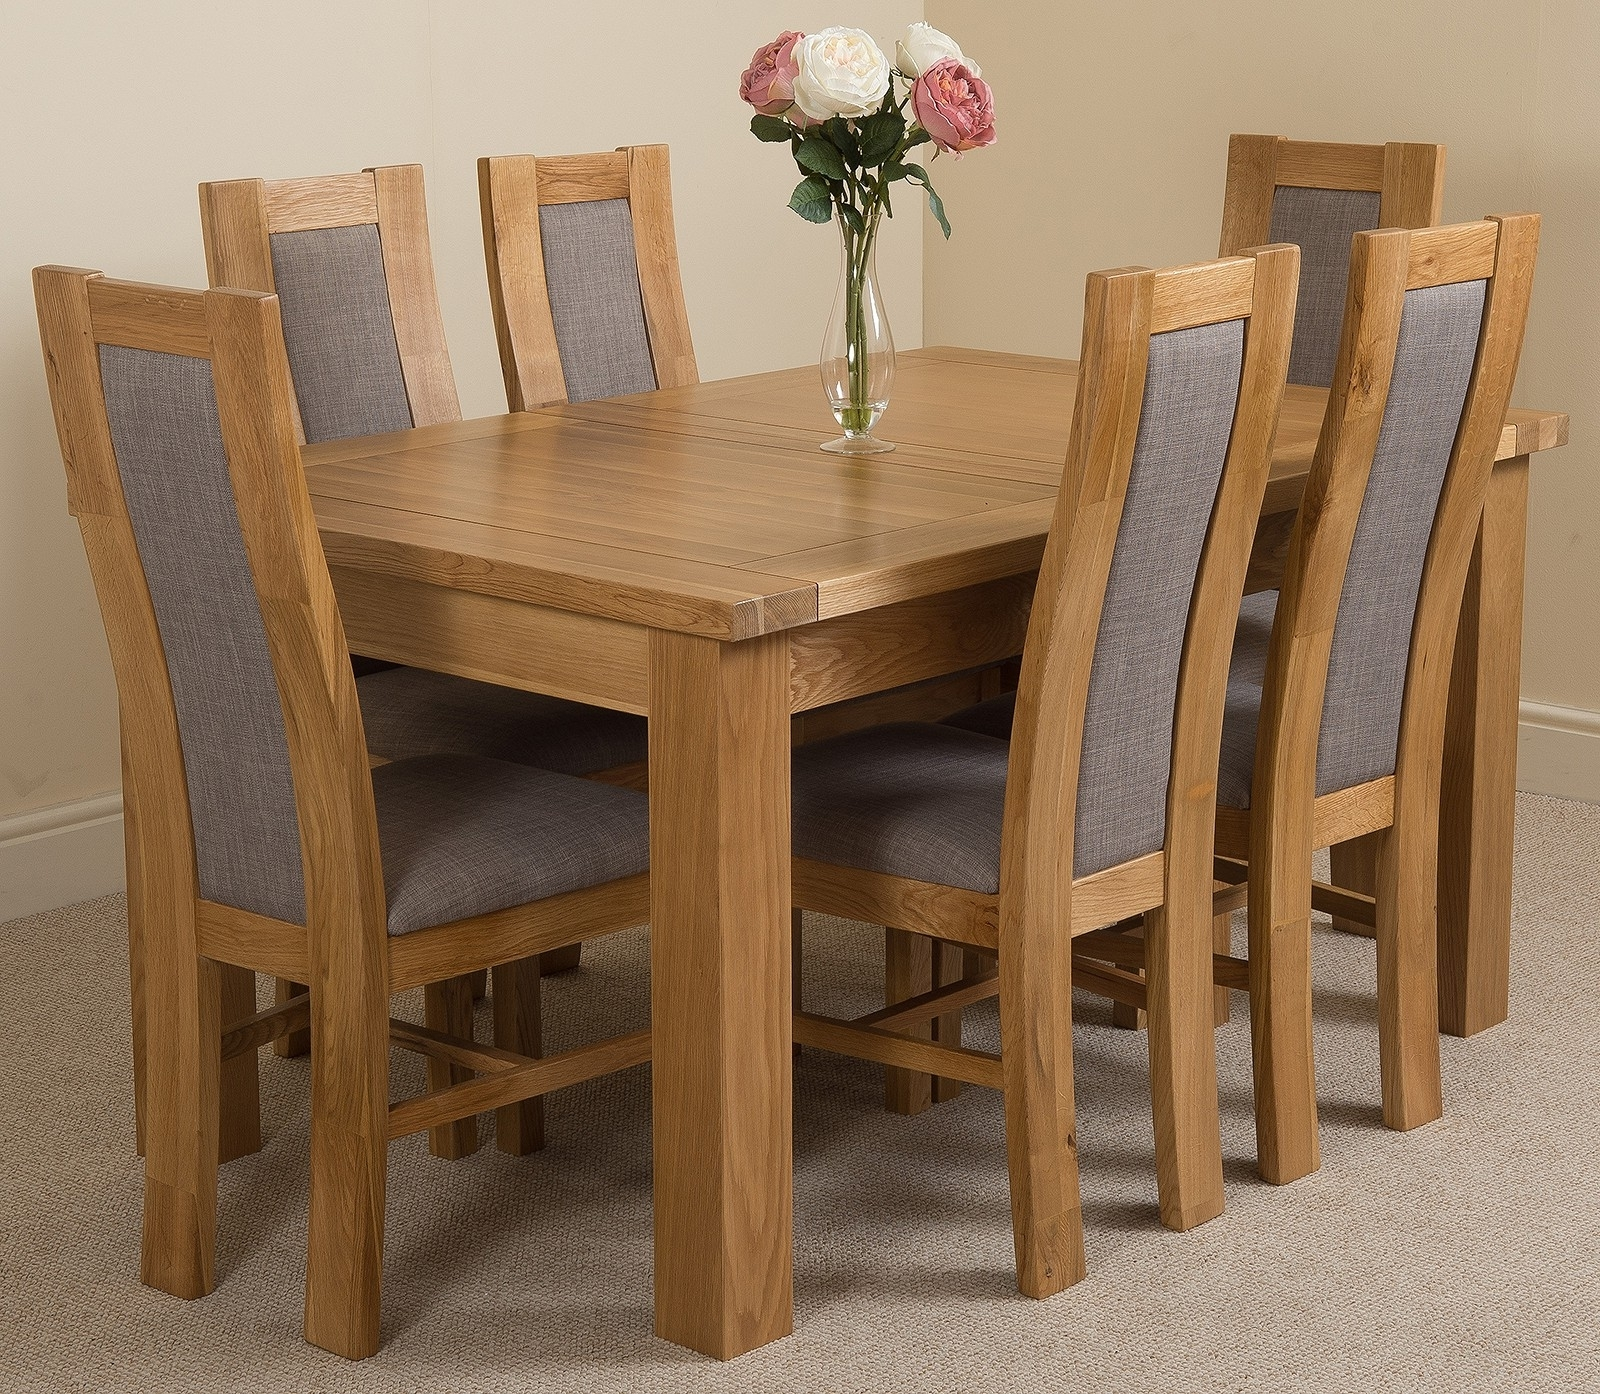 Oak Furniture King Regarding Oak Dining Set 6 Chairs (View 19 of 25)